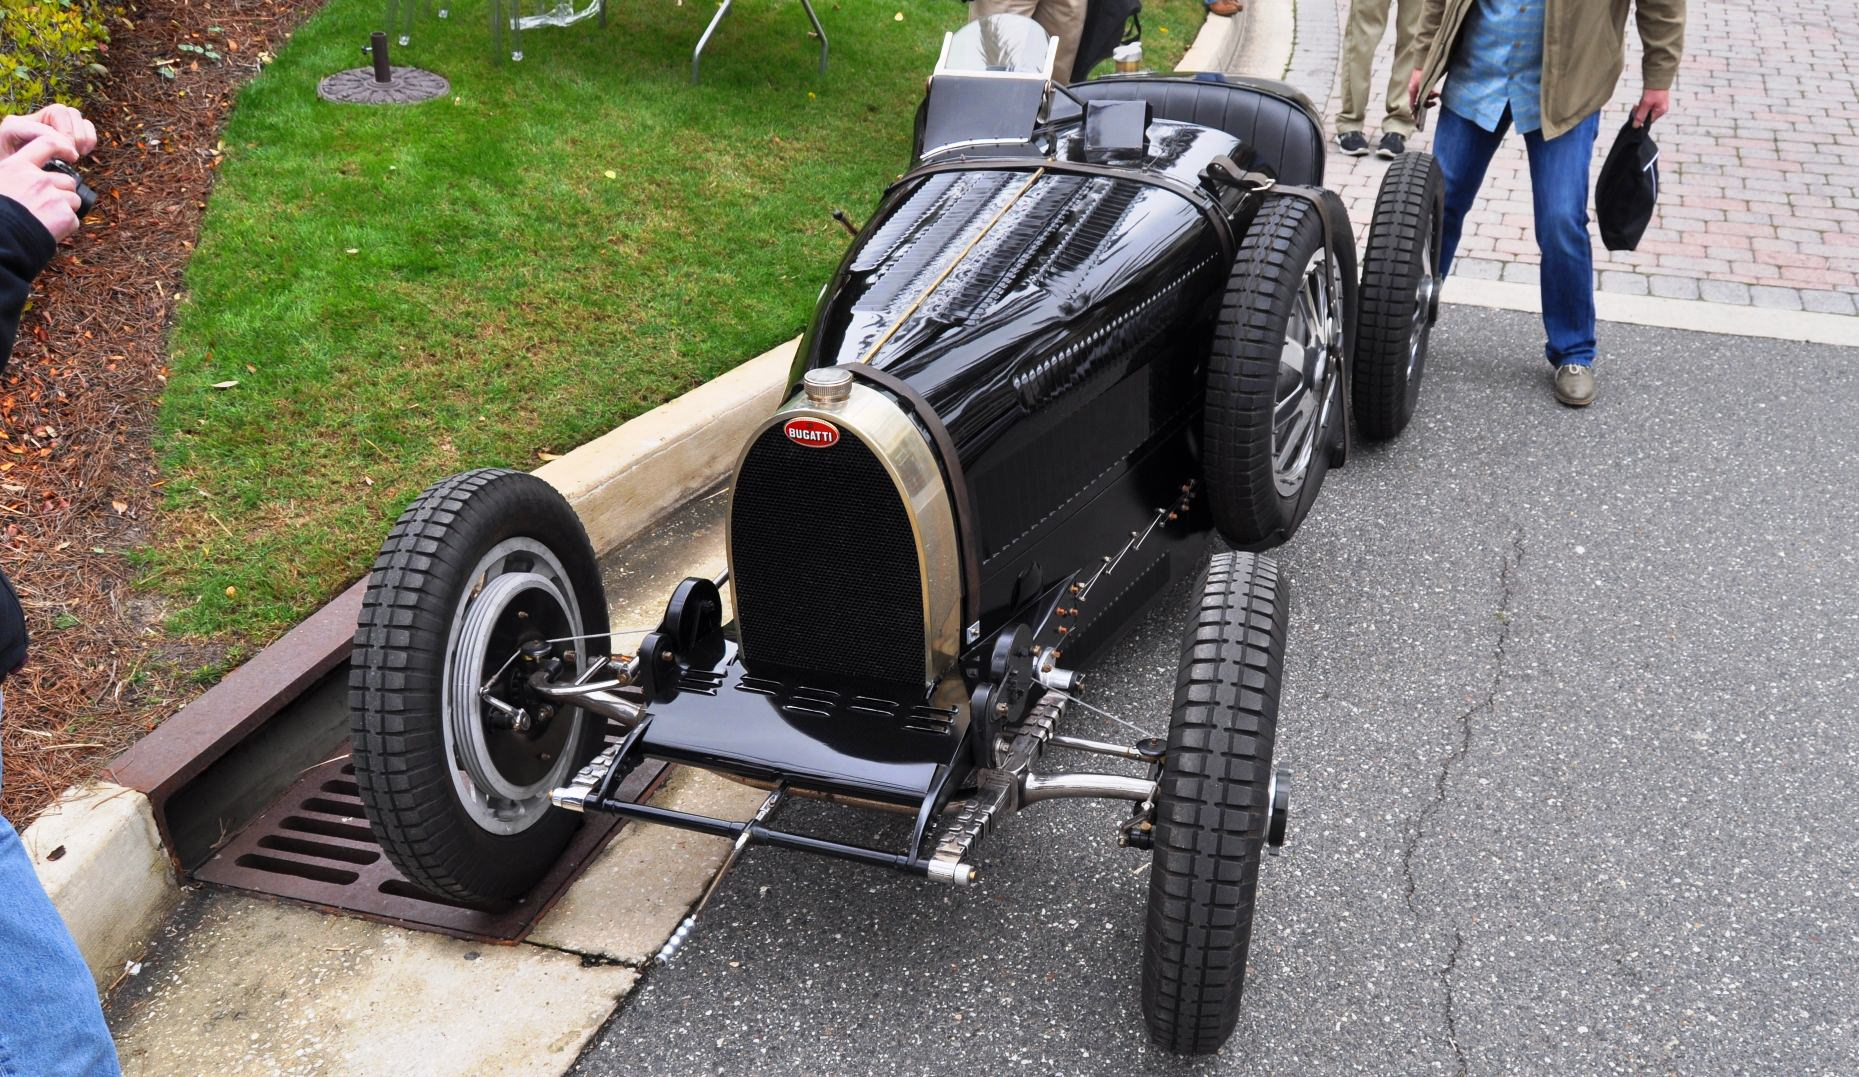 PurSang Argentina Shows Innovative Marketing with Street-Parked 1920s Bugatti GP Car26